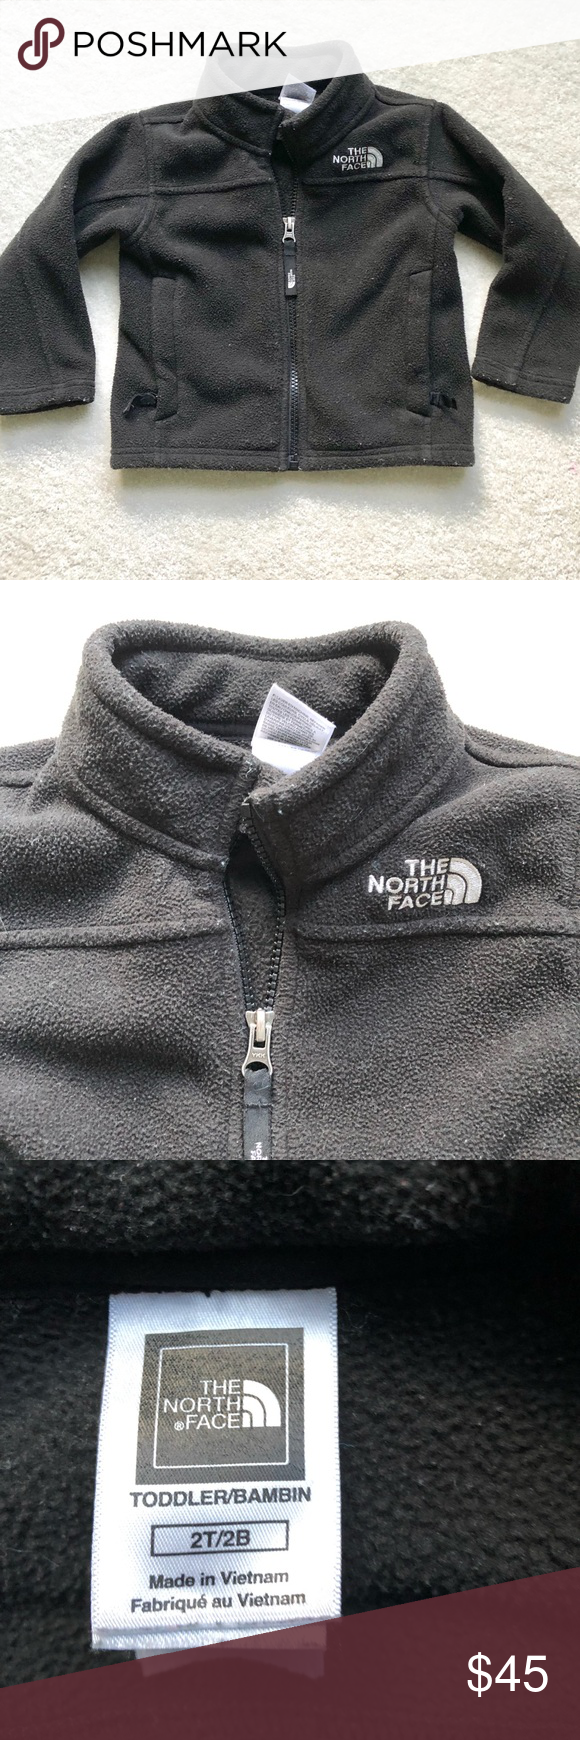 The North Face Size 2t Fleece Coat The North Face Size 2t Fleece Coat The North Face Jackets Coats Fleece Coat North Face Jacket The North Face [ 1740 x 580 Pixel ]